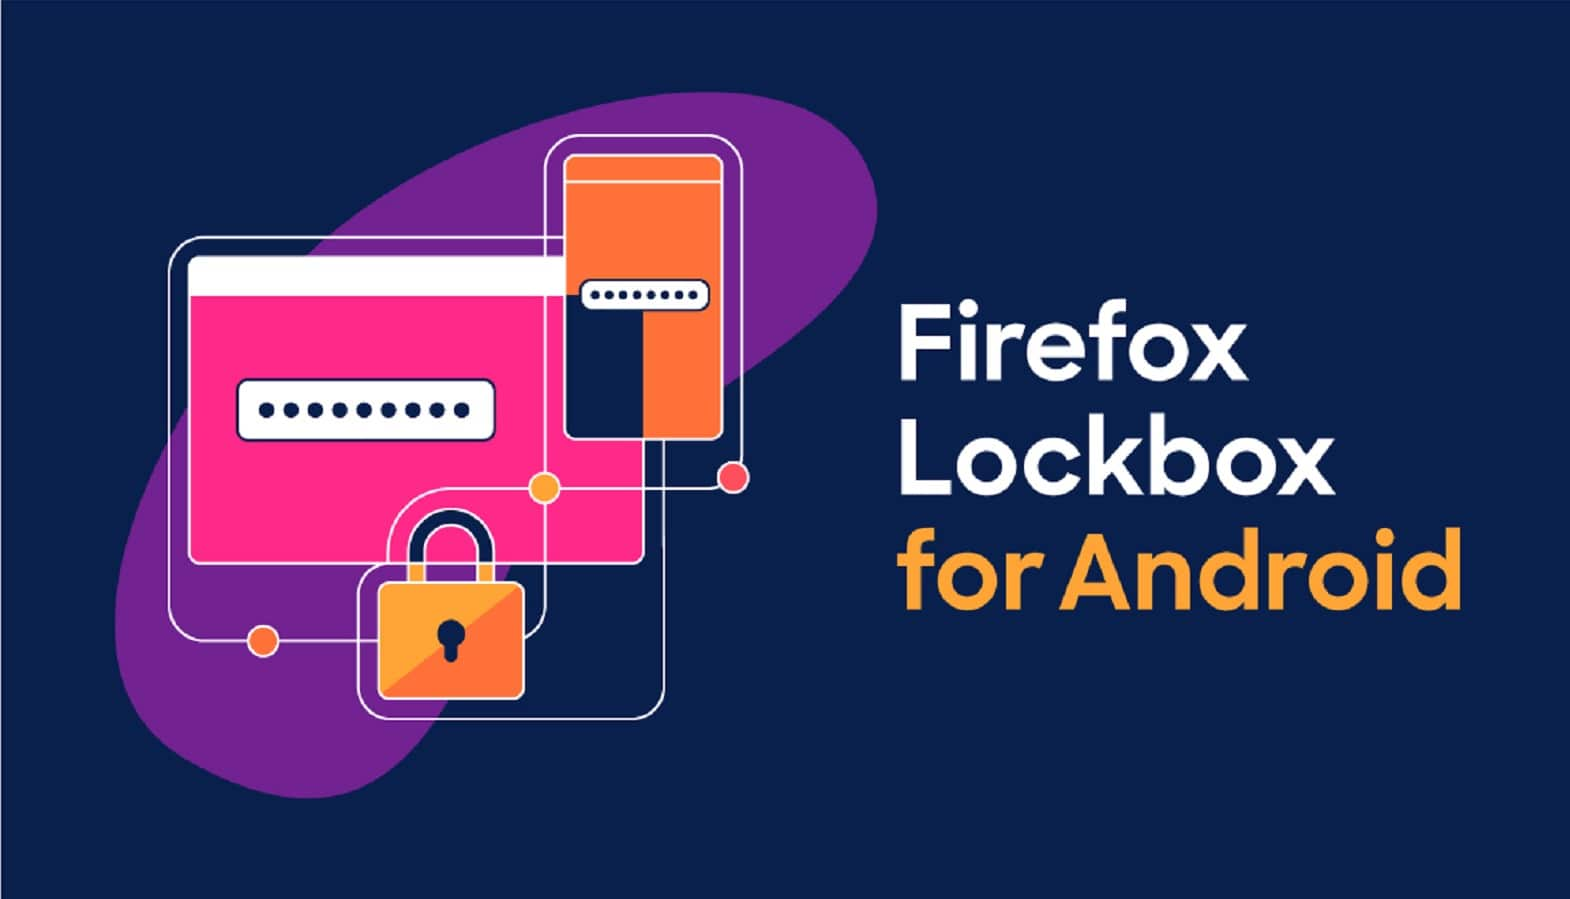 firefox lockbox for android from mozilla